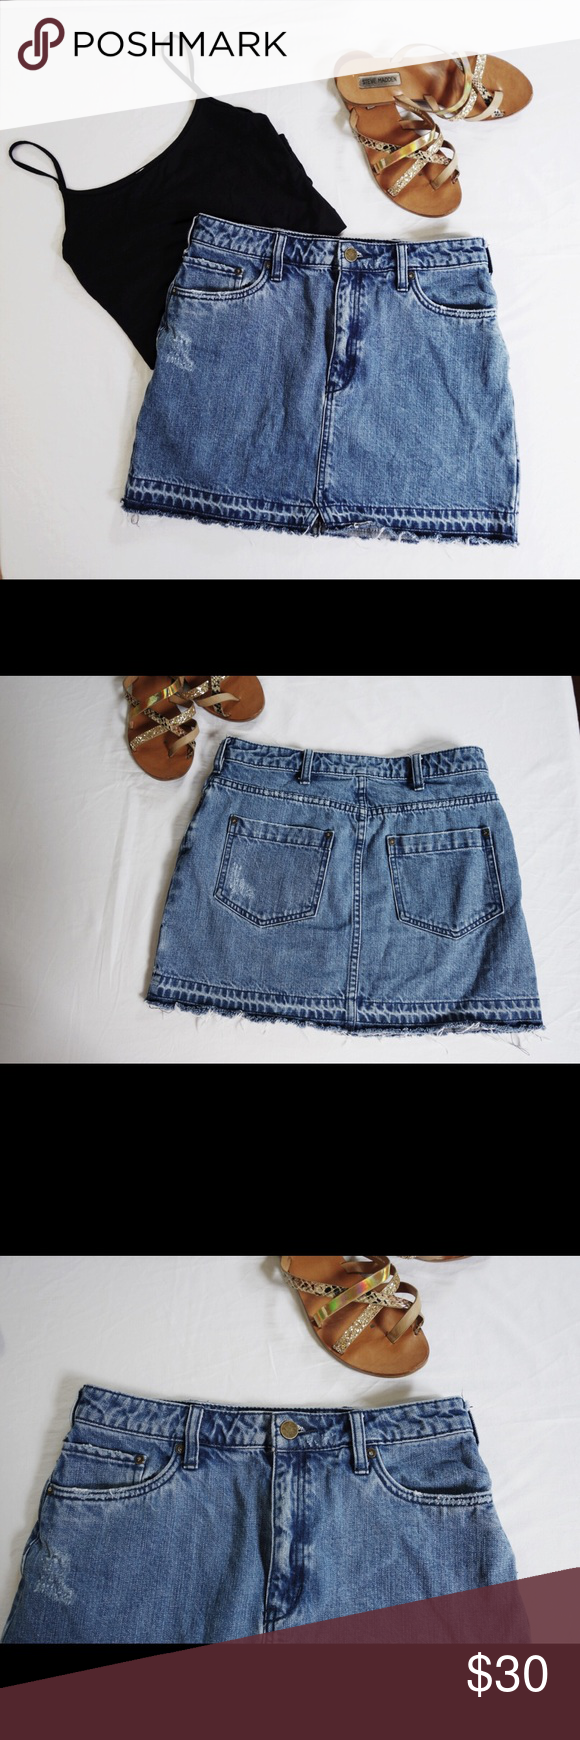 f1d146f437316 Free People Step Up Denim Mini Skirt Adorable